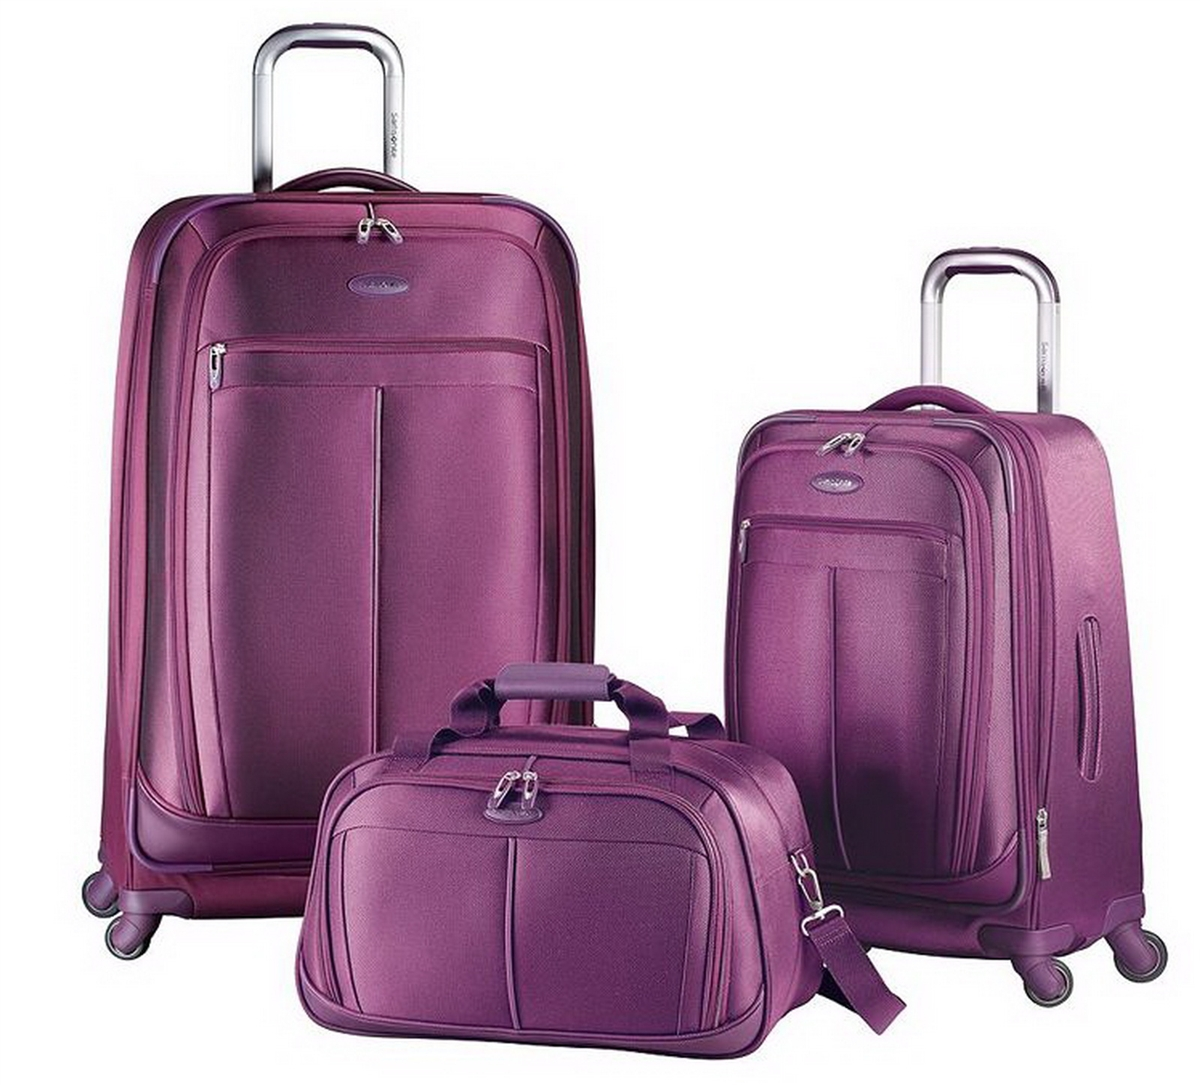 Samsonite 3 pc Spinner Luggage Set 29